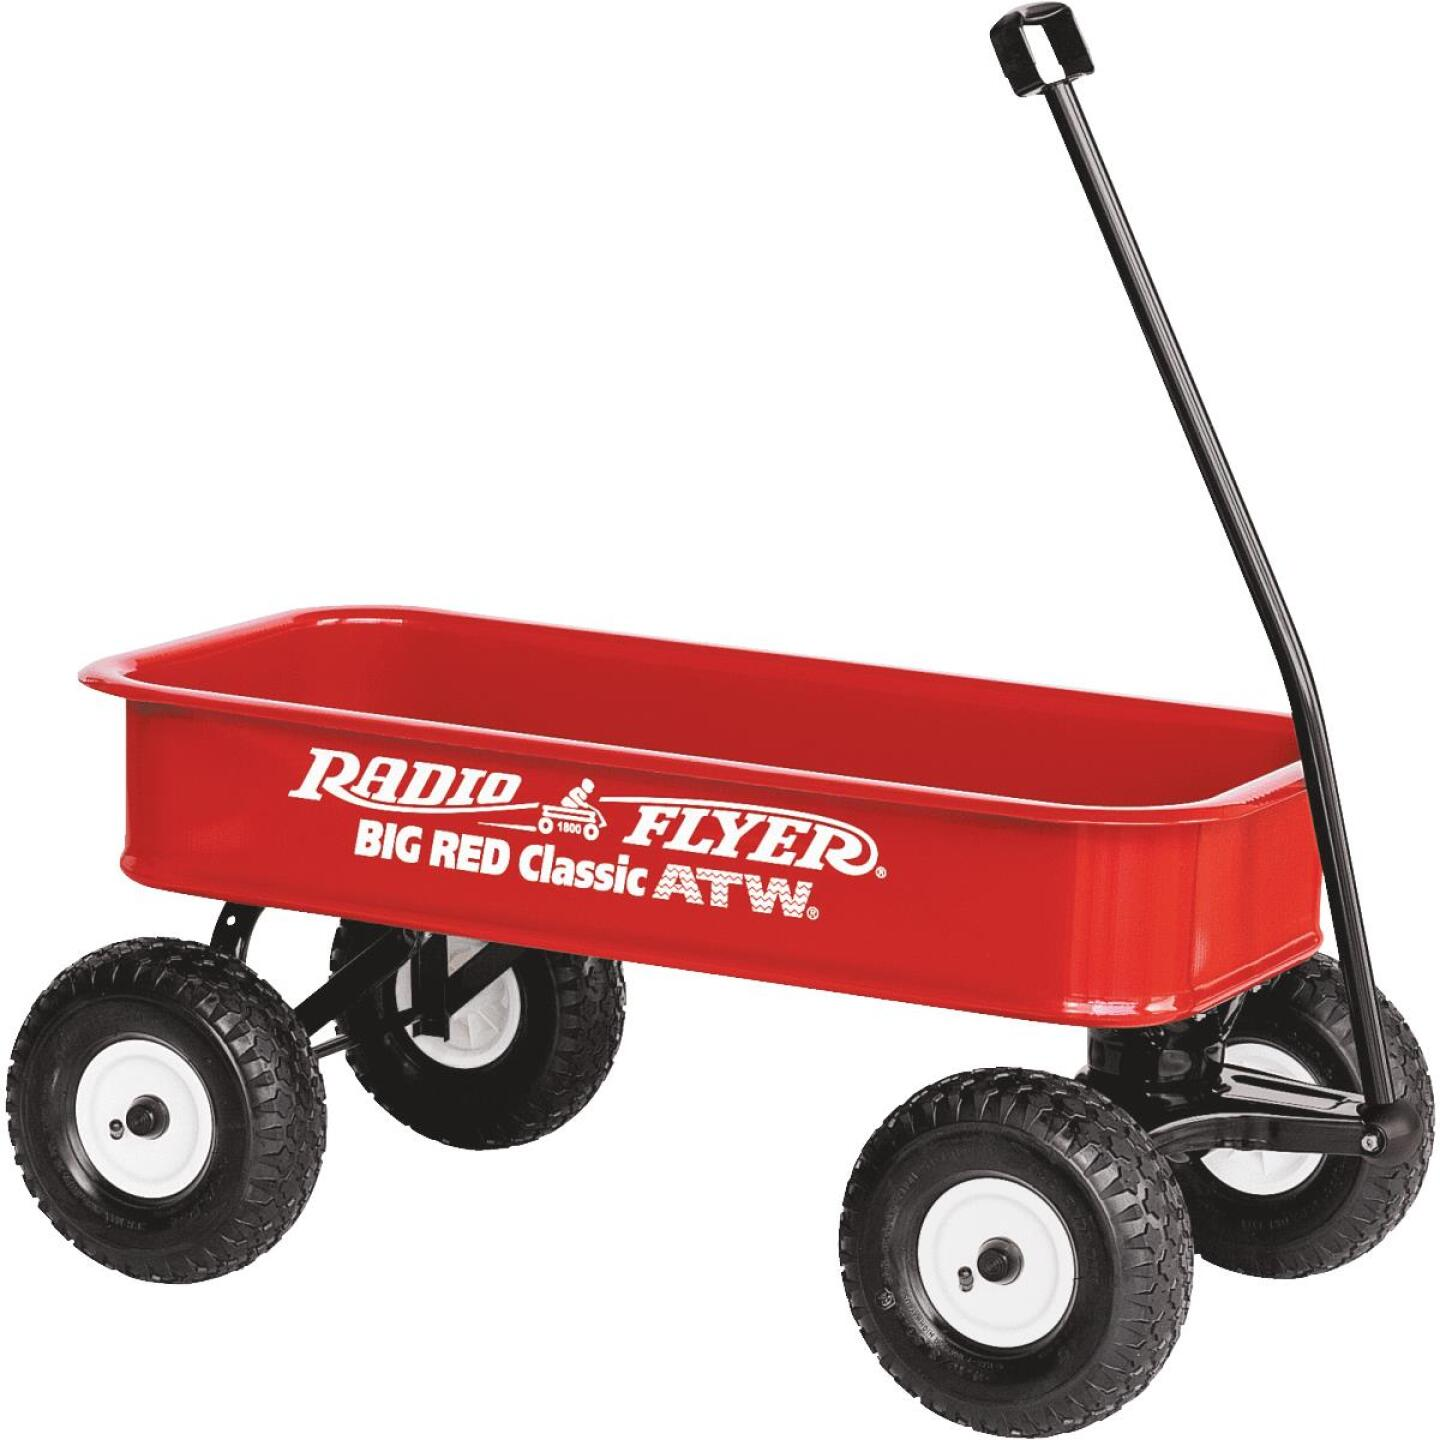 Radio Flyer Big Red Classic 36 In. ATW Wagon Image 1